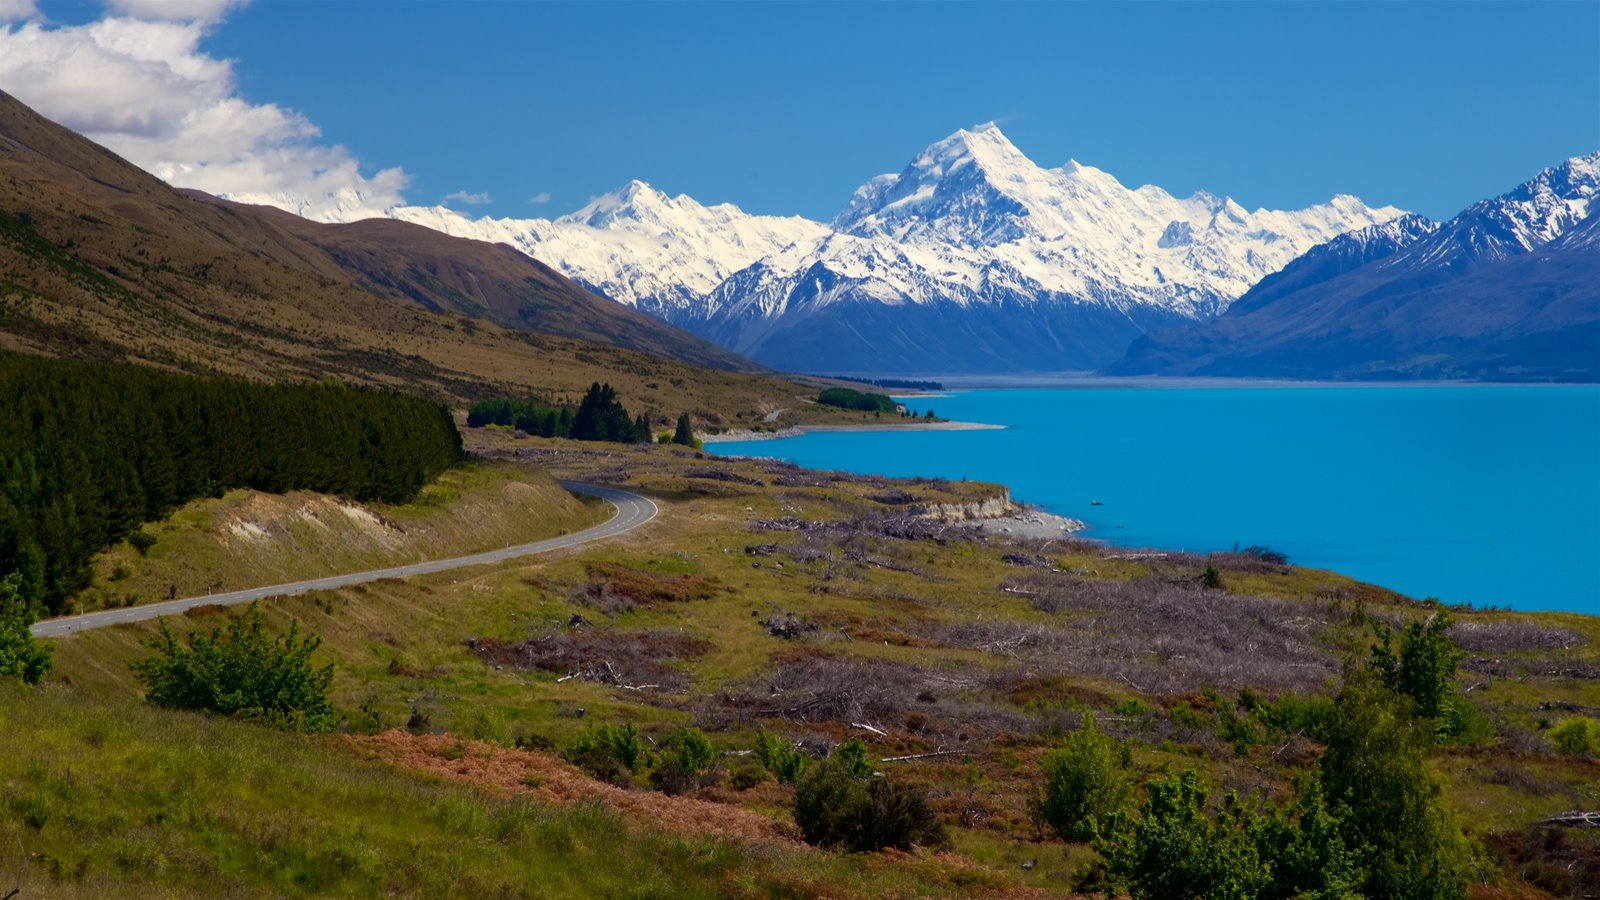 Mount Cook National Park featuring tranquil scenes, mountains and snow